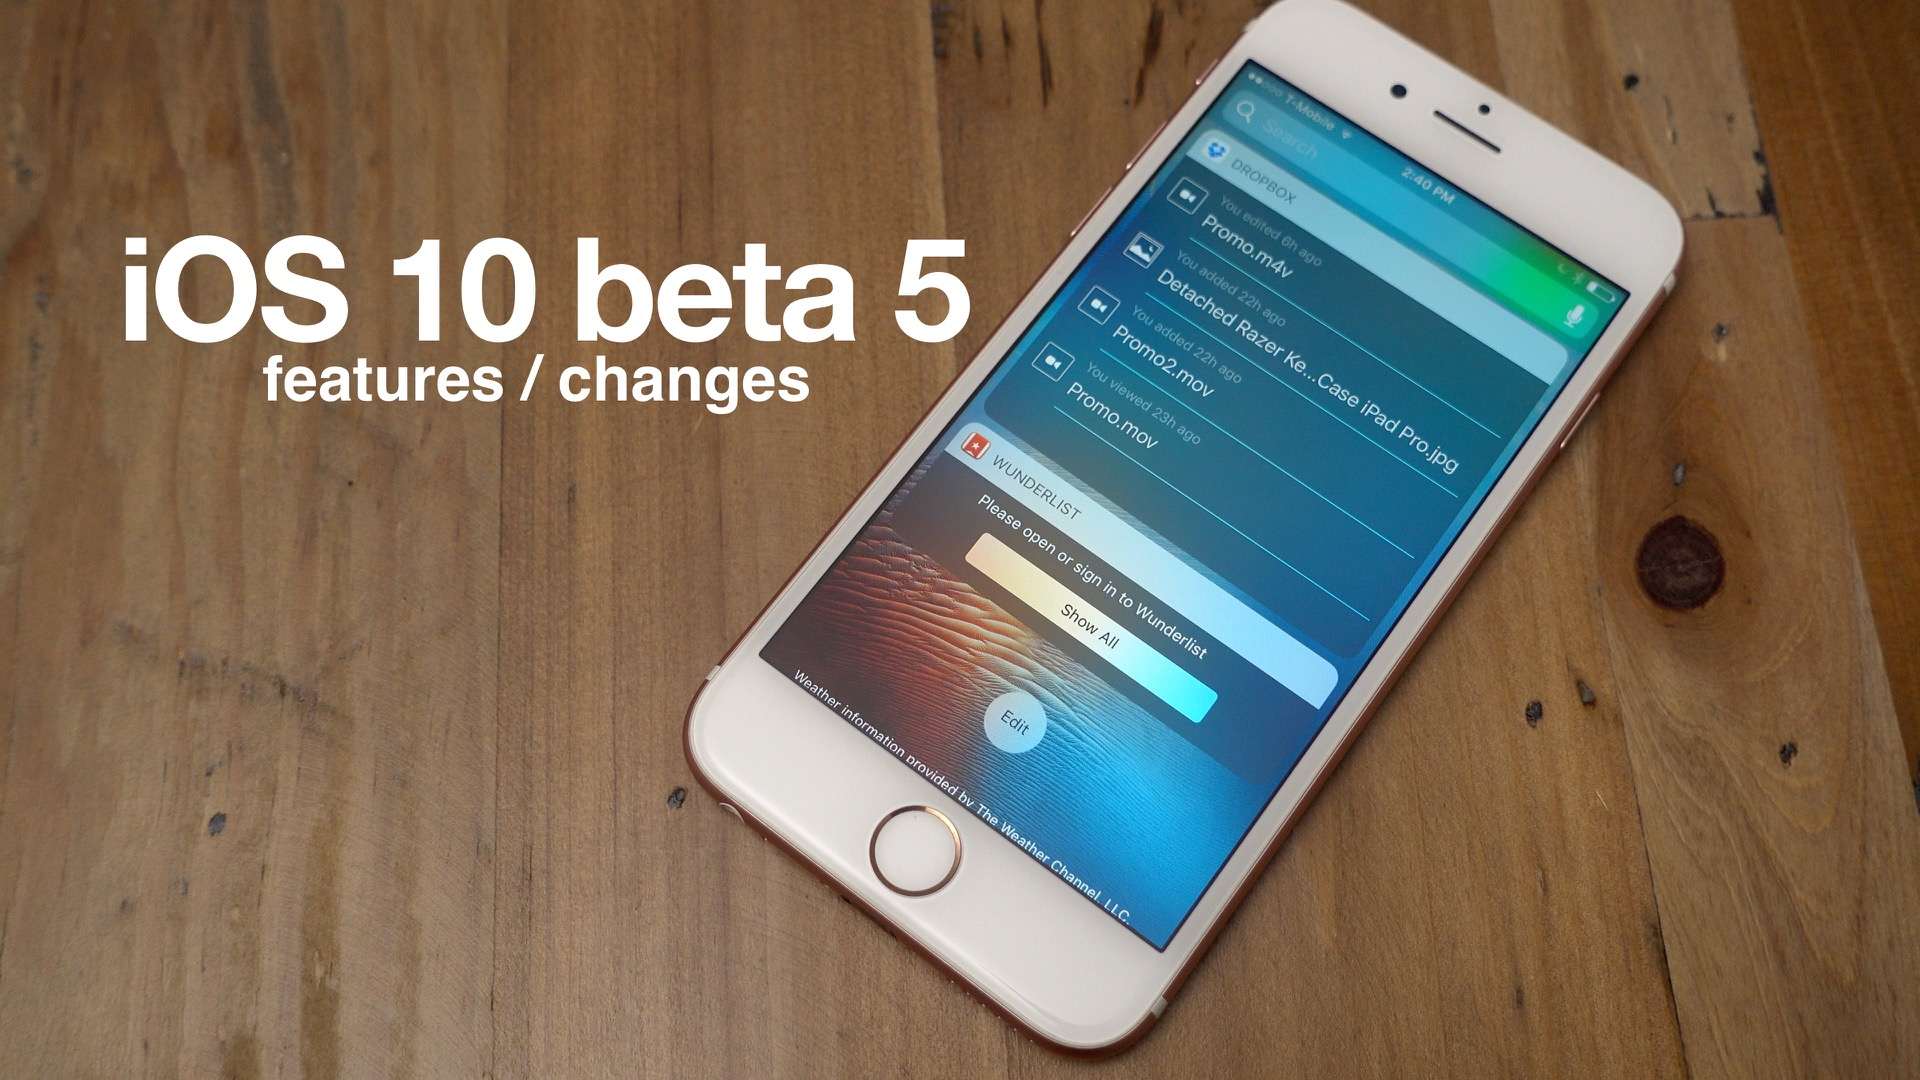 beta 5 iOS 10 features changes